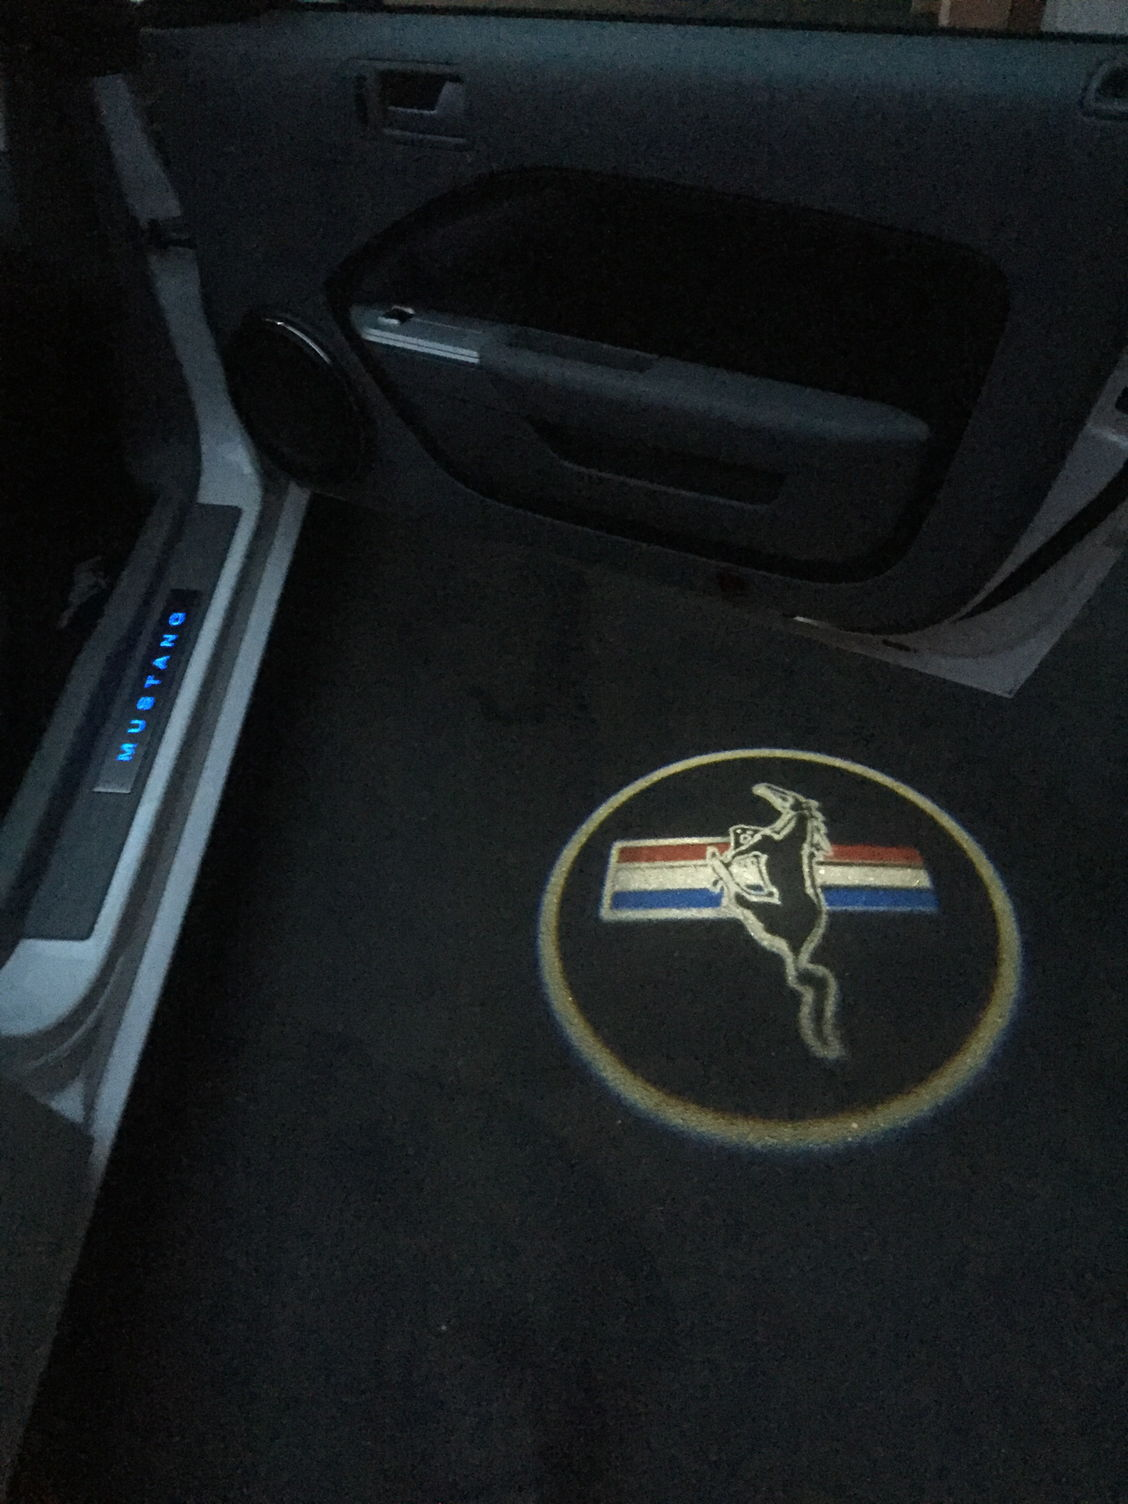 Fog Light Switch Help The Mustang Source Ford Forums 1994 Gt Wiring Diagram I Think Tbills Write Up On Sill Plates Would Be Your Fix Bet Its Close To Same Thats Where Wired My Pony Lights They Time Out Just Fine